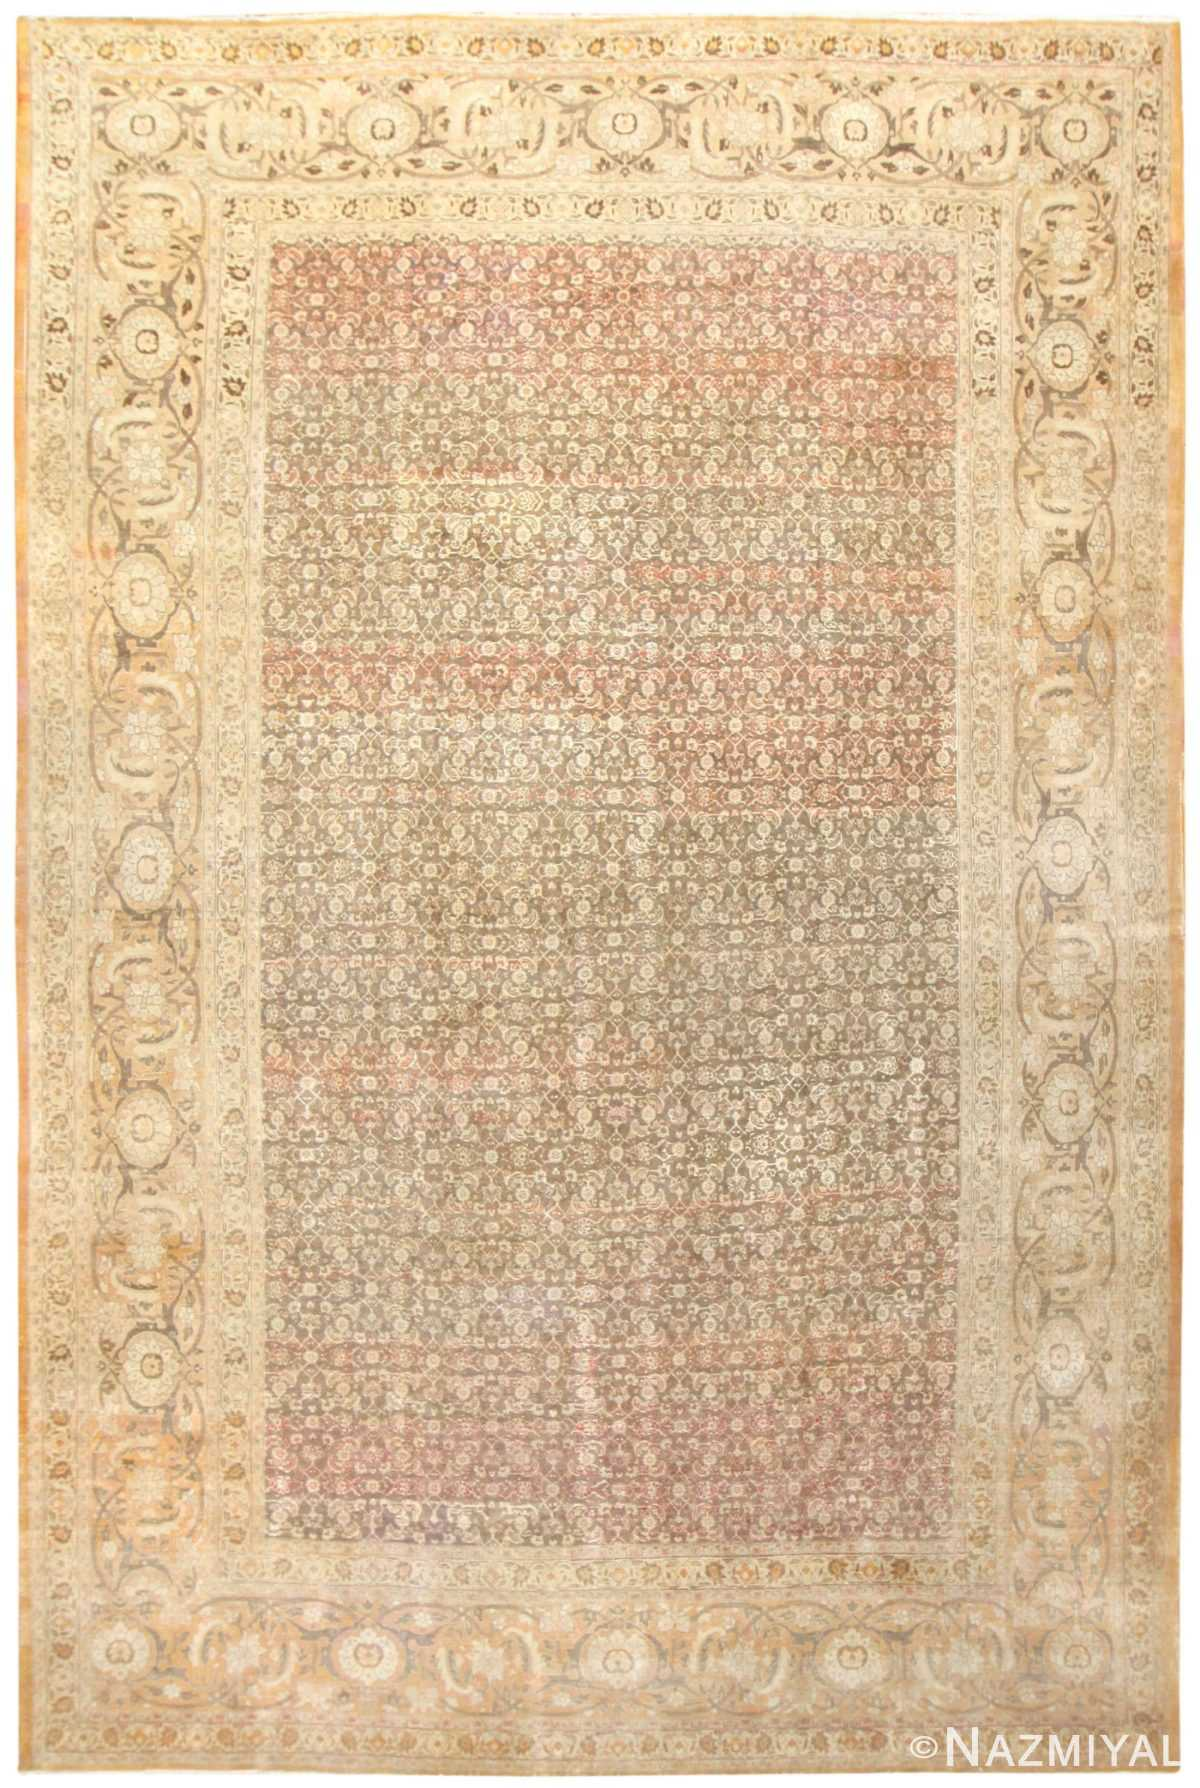 Large Antique Persian Tabriz Rug 50058 by nazmiyal